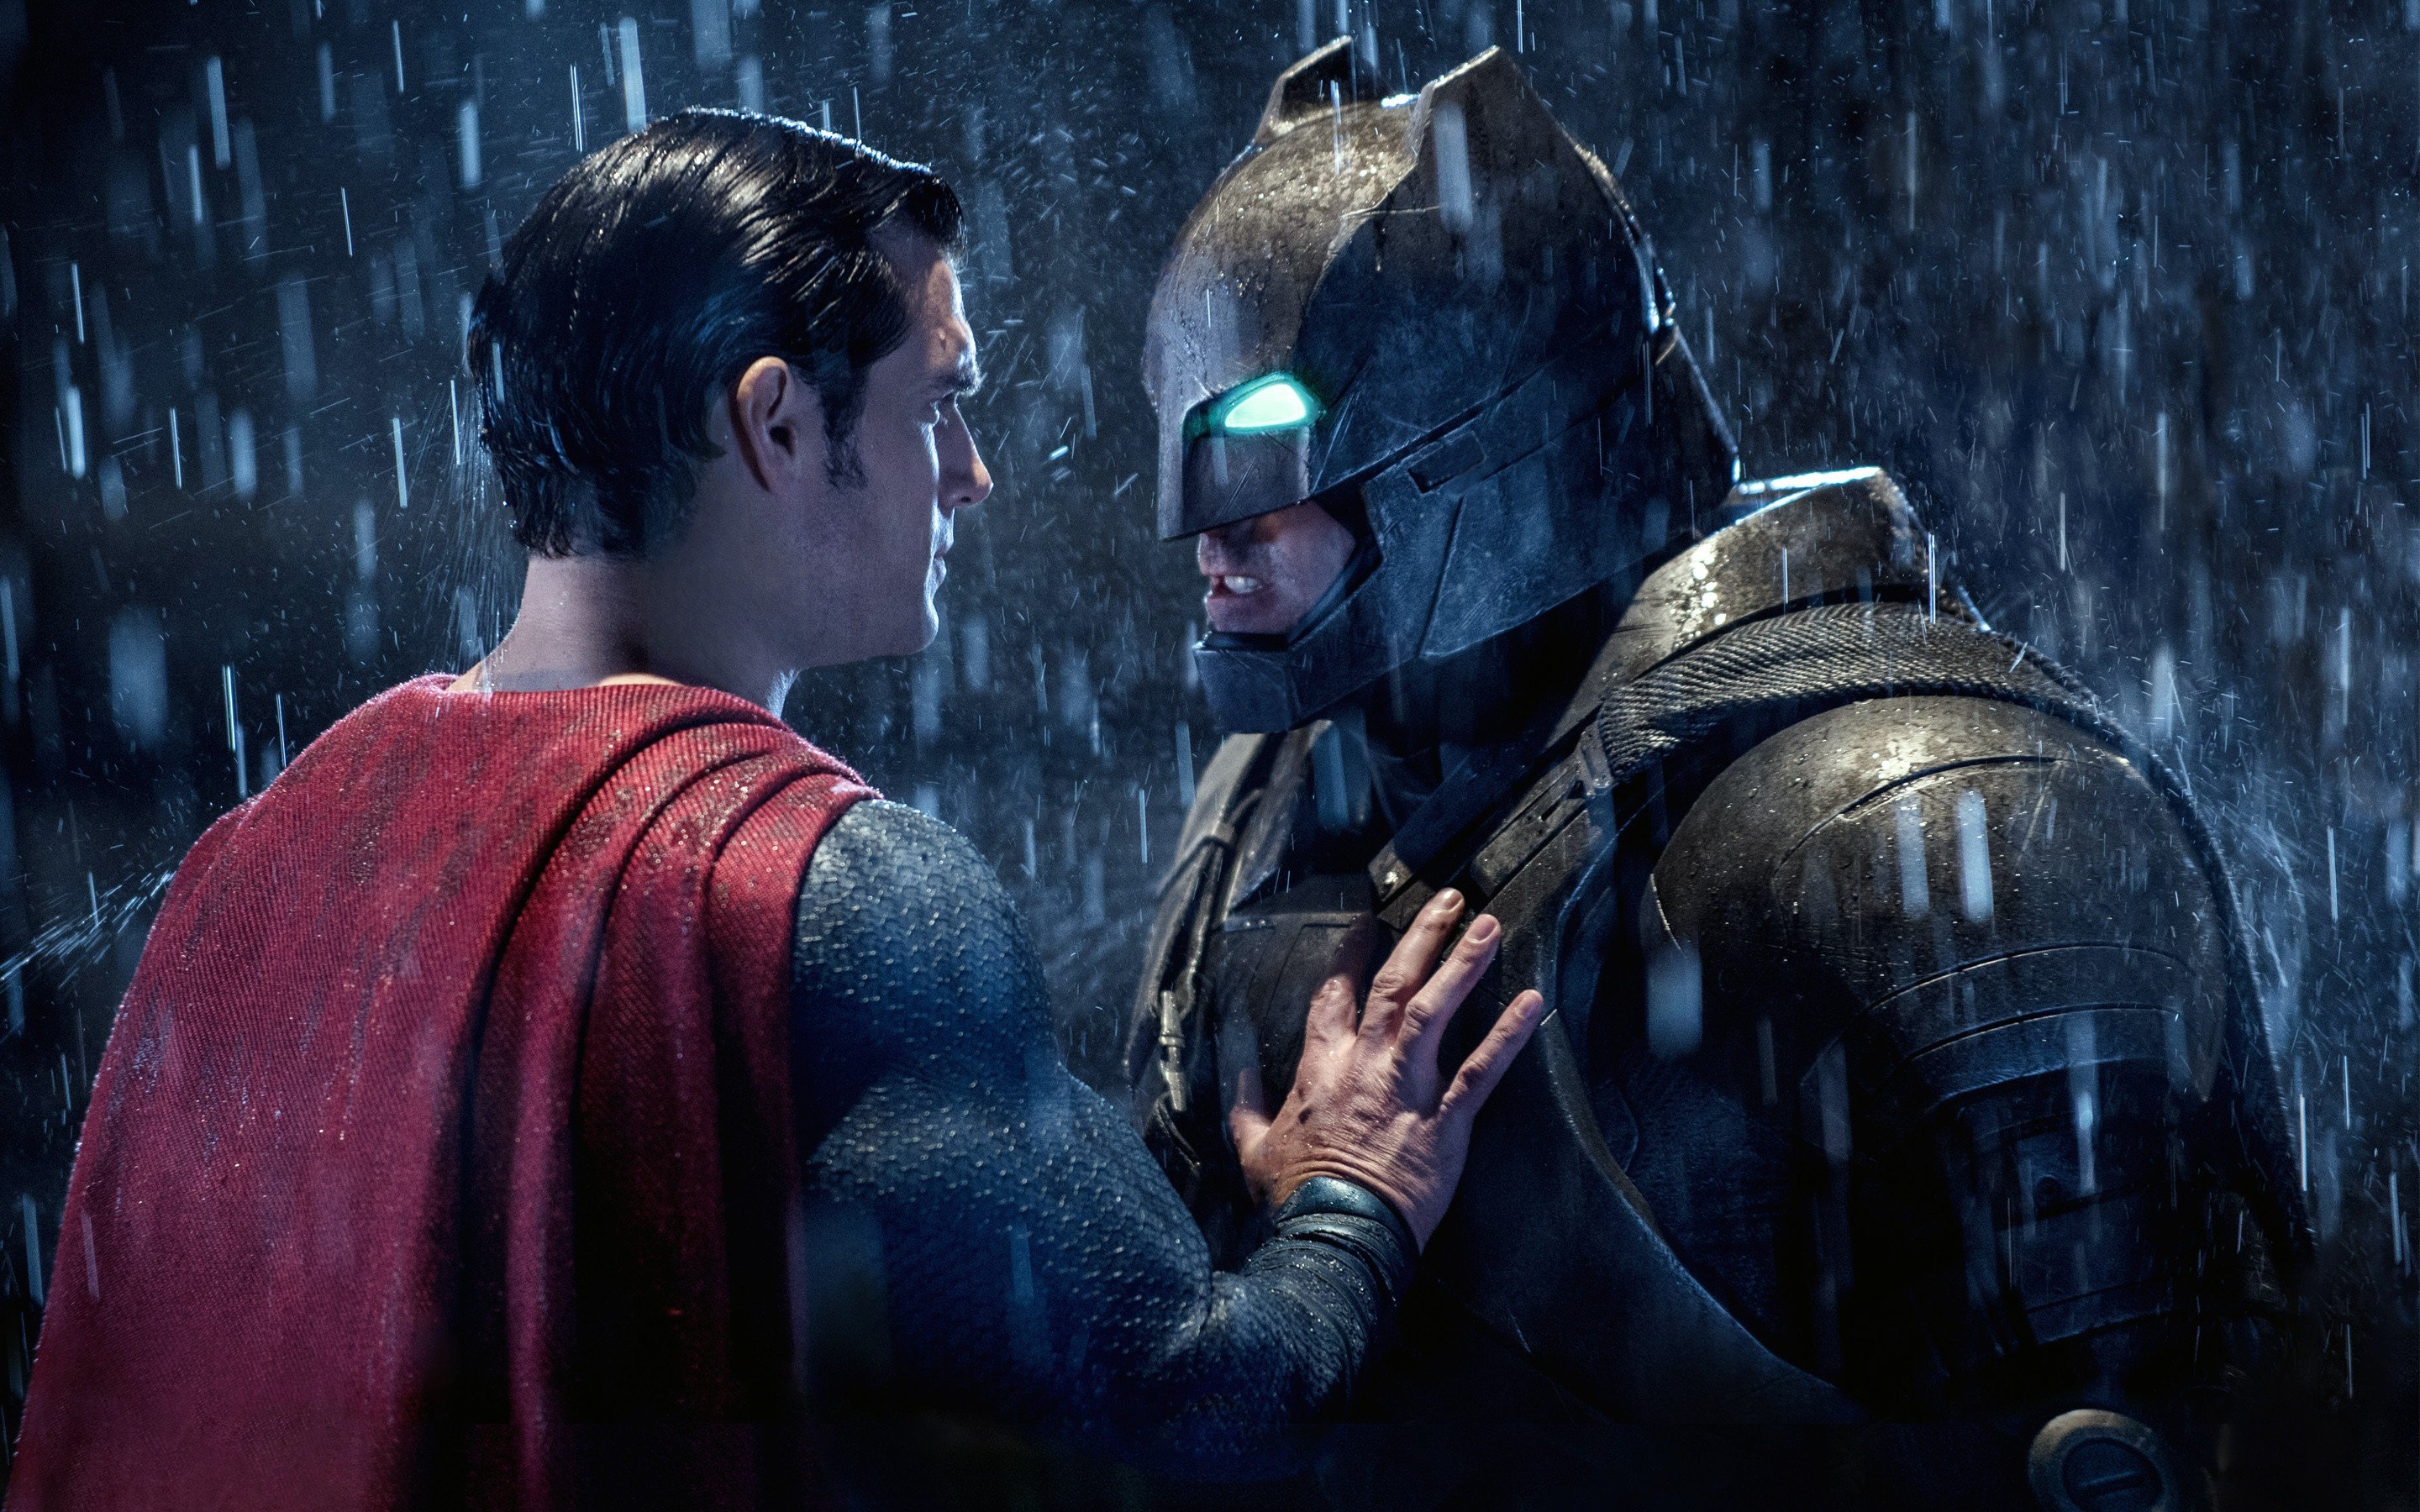 Batman v superman hd movies 4k wallpapers images - Super batman movie ...